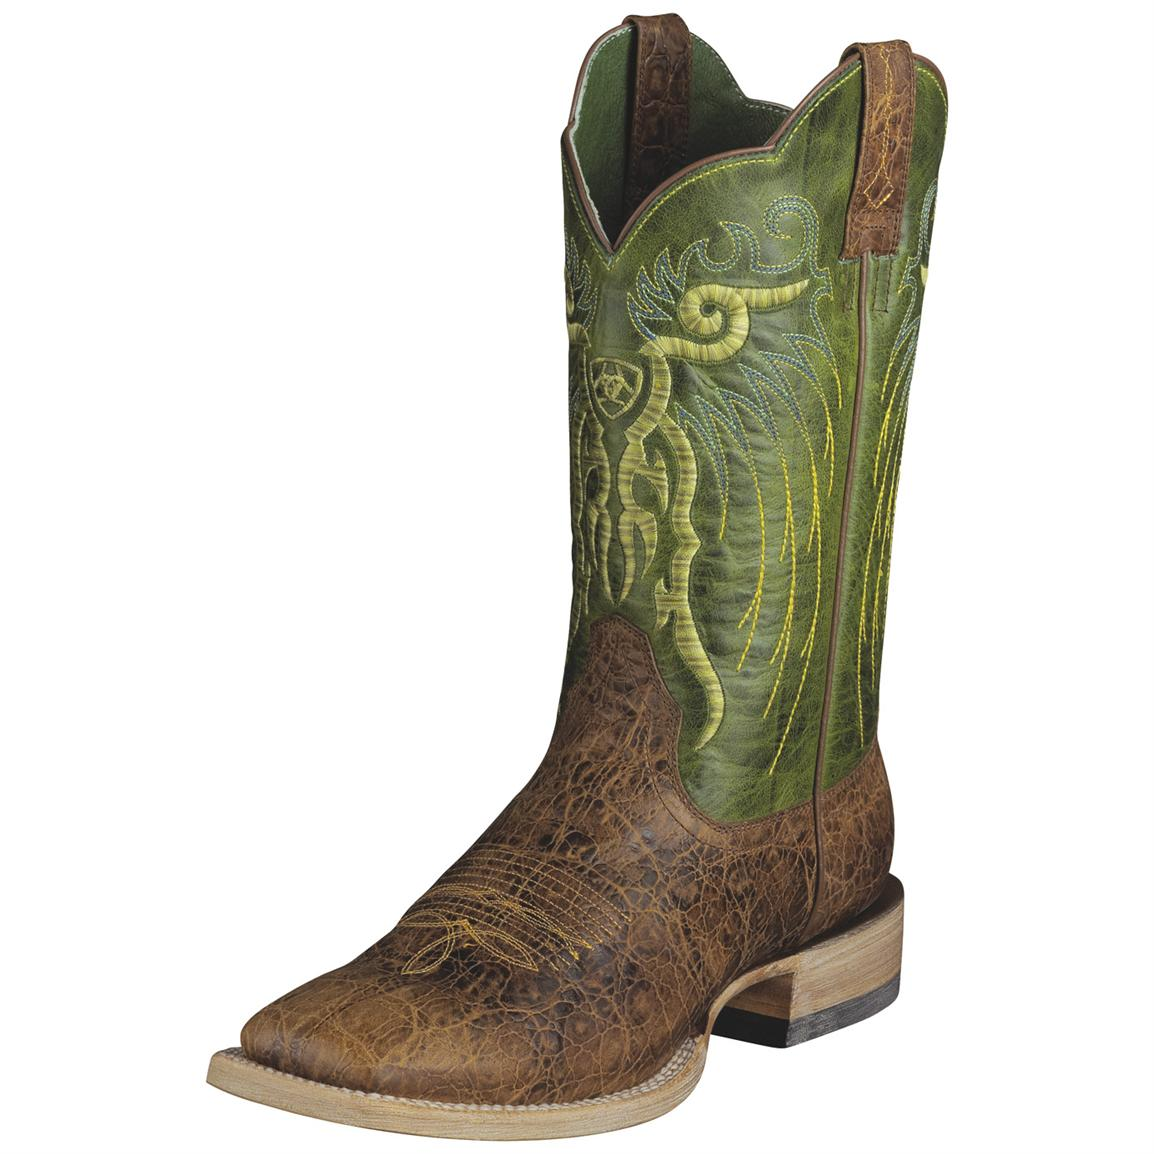 Men's Ariat® 12 inch Mesteno Western Boots, Adobe Clay/Lime